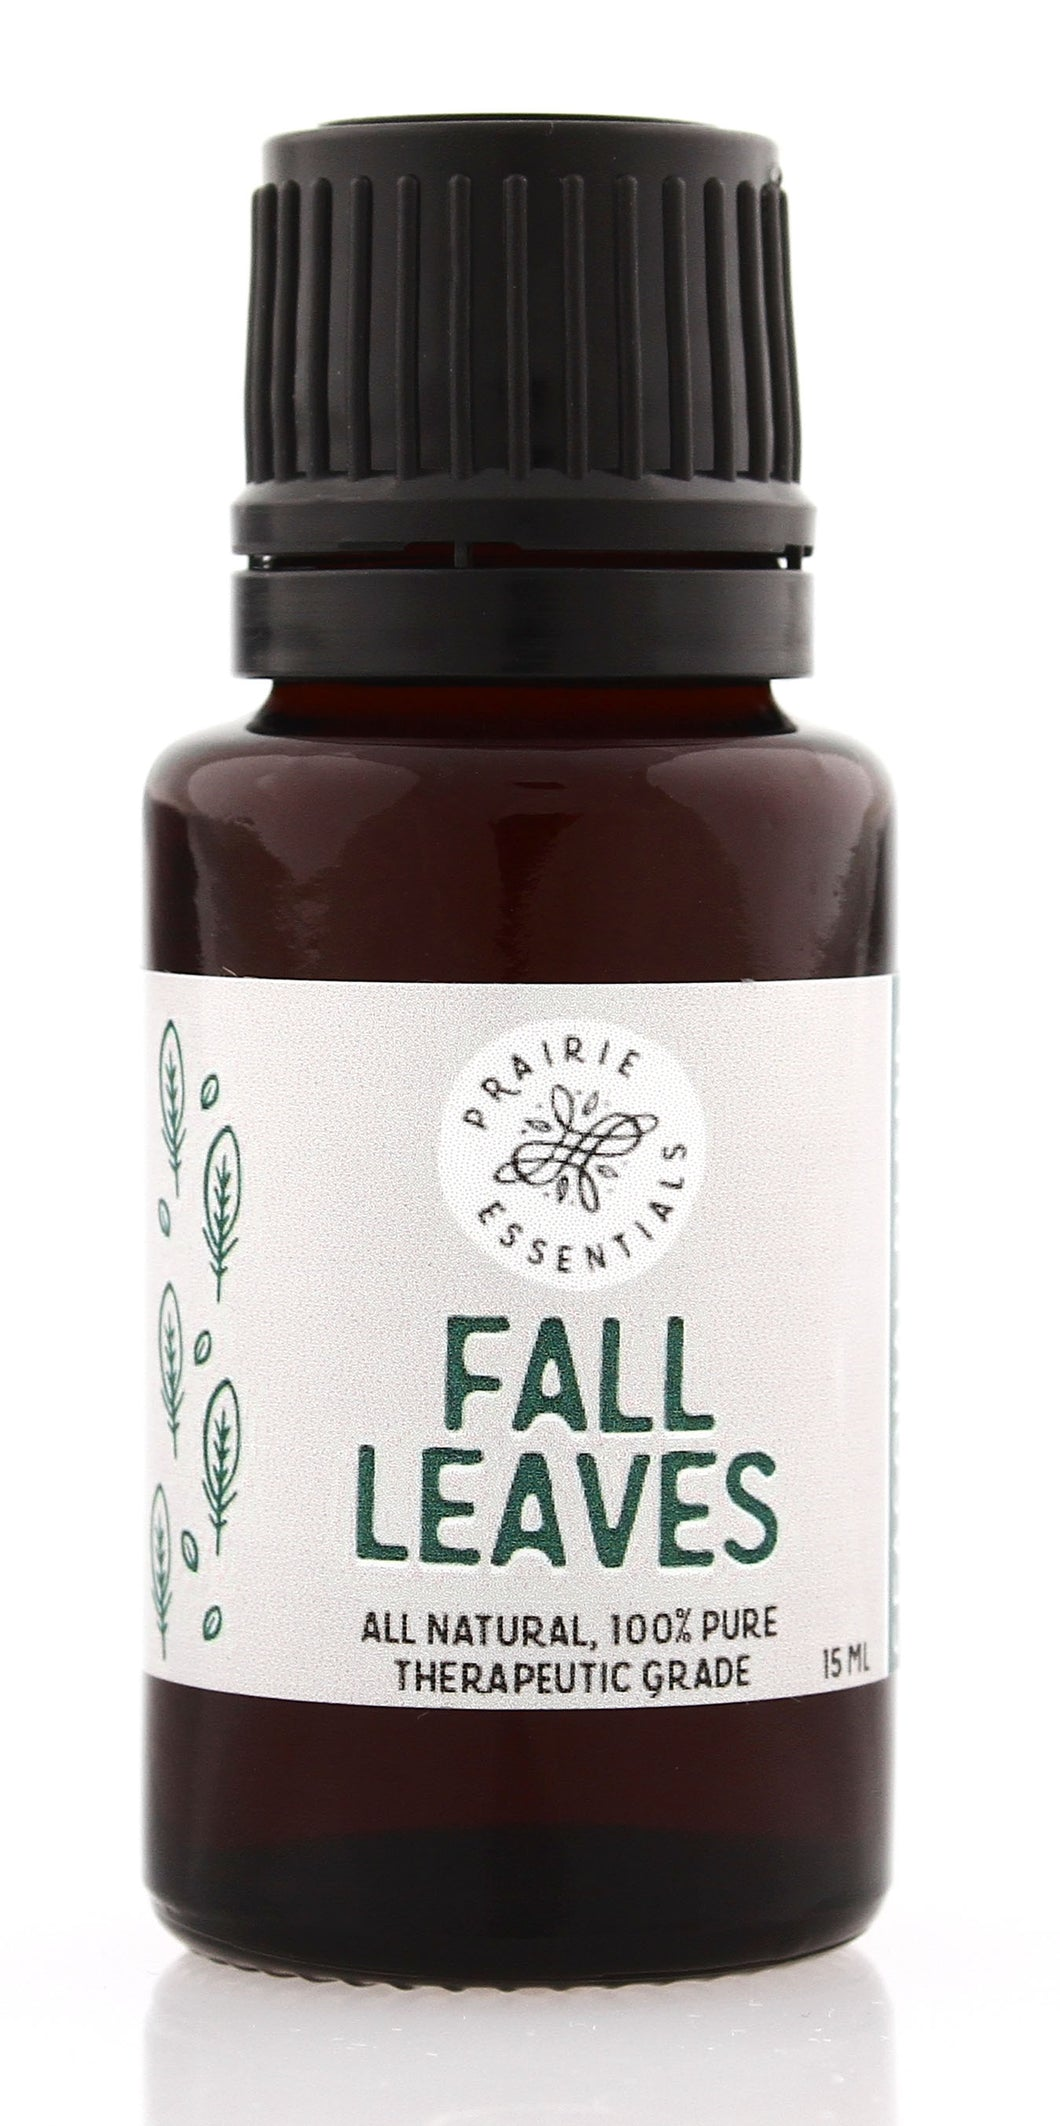 Fall Leaves, 15ml